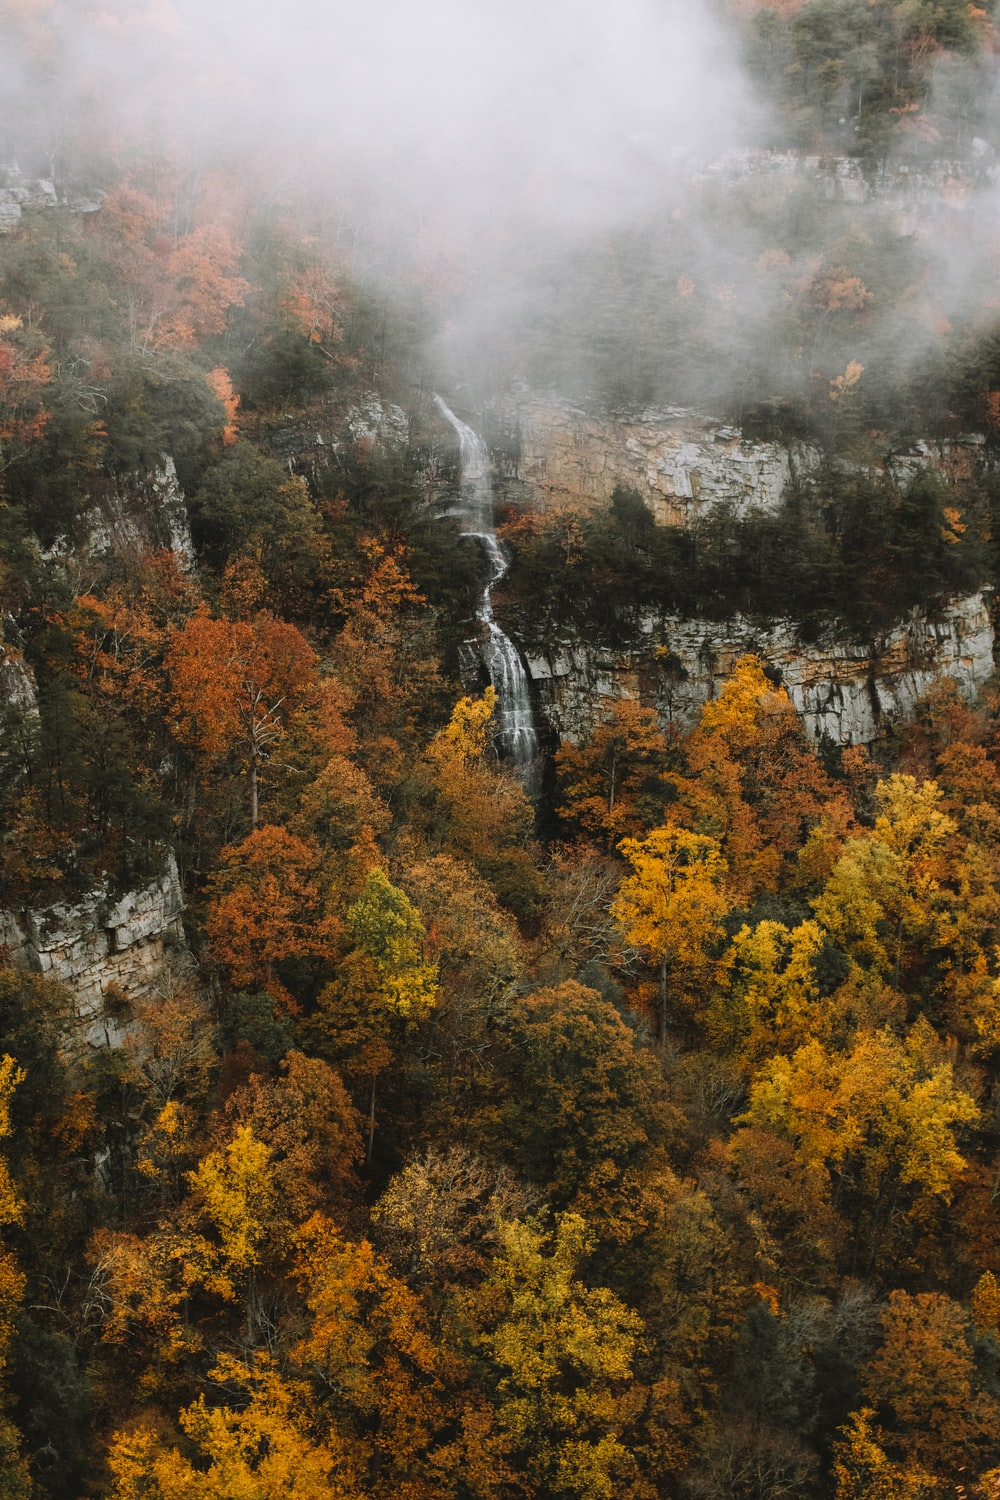 aerial view of waterfalls surrounded by tall trees with fog